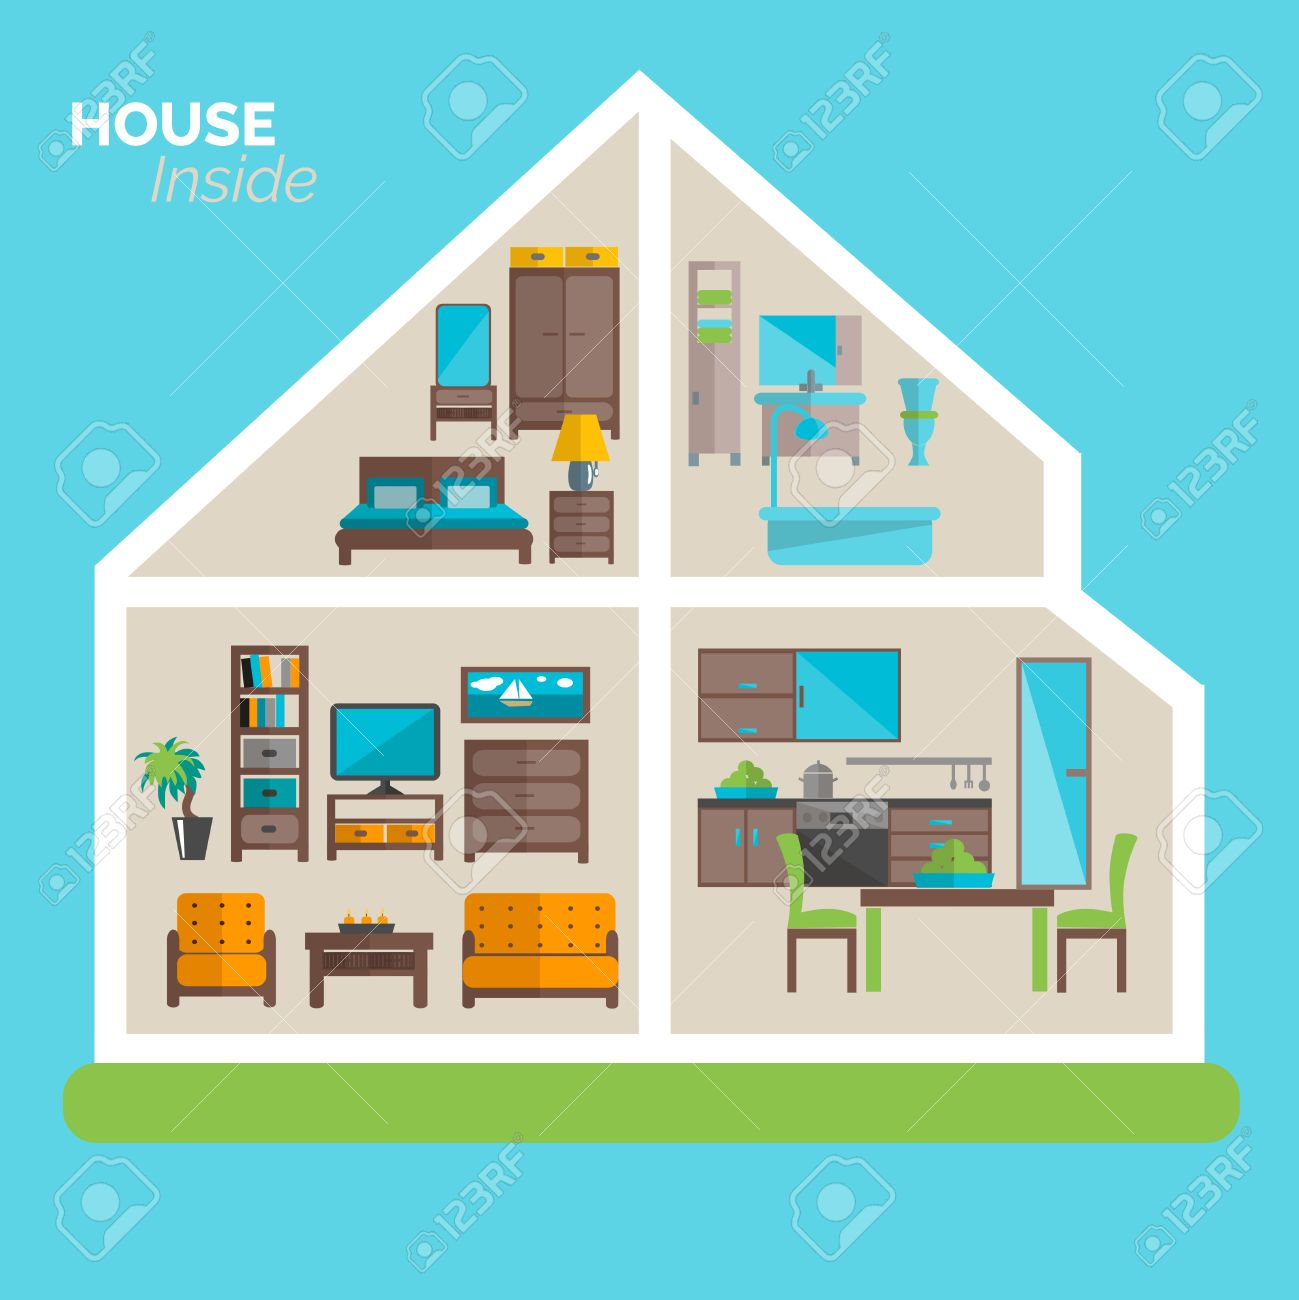 Delightful House Inside Interior Design Ideas Poster For Sleeping Sitting Rooms And  Kitchen Furniture Flat Abstract Vector